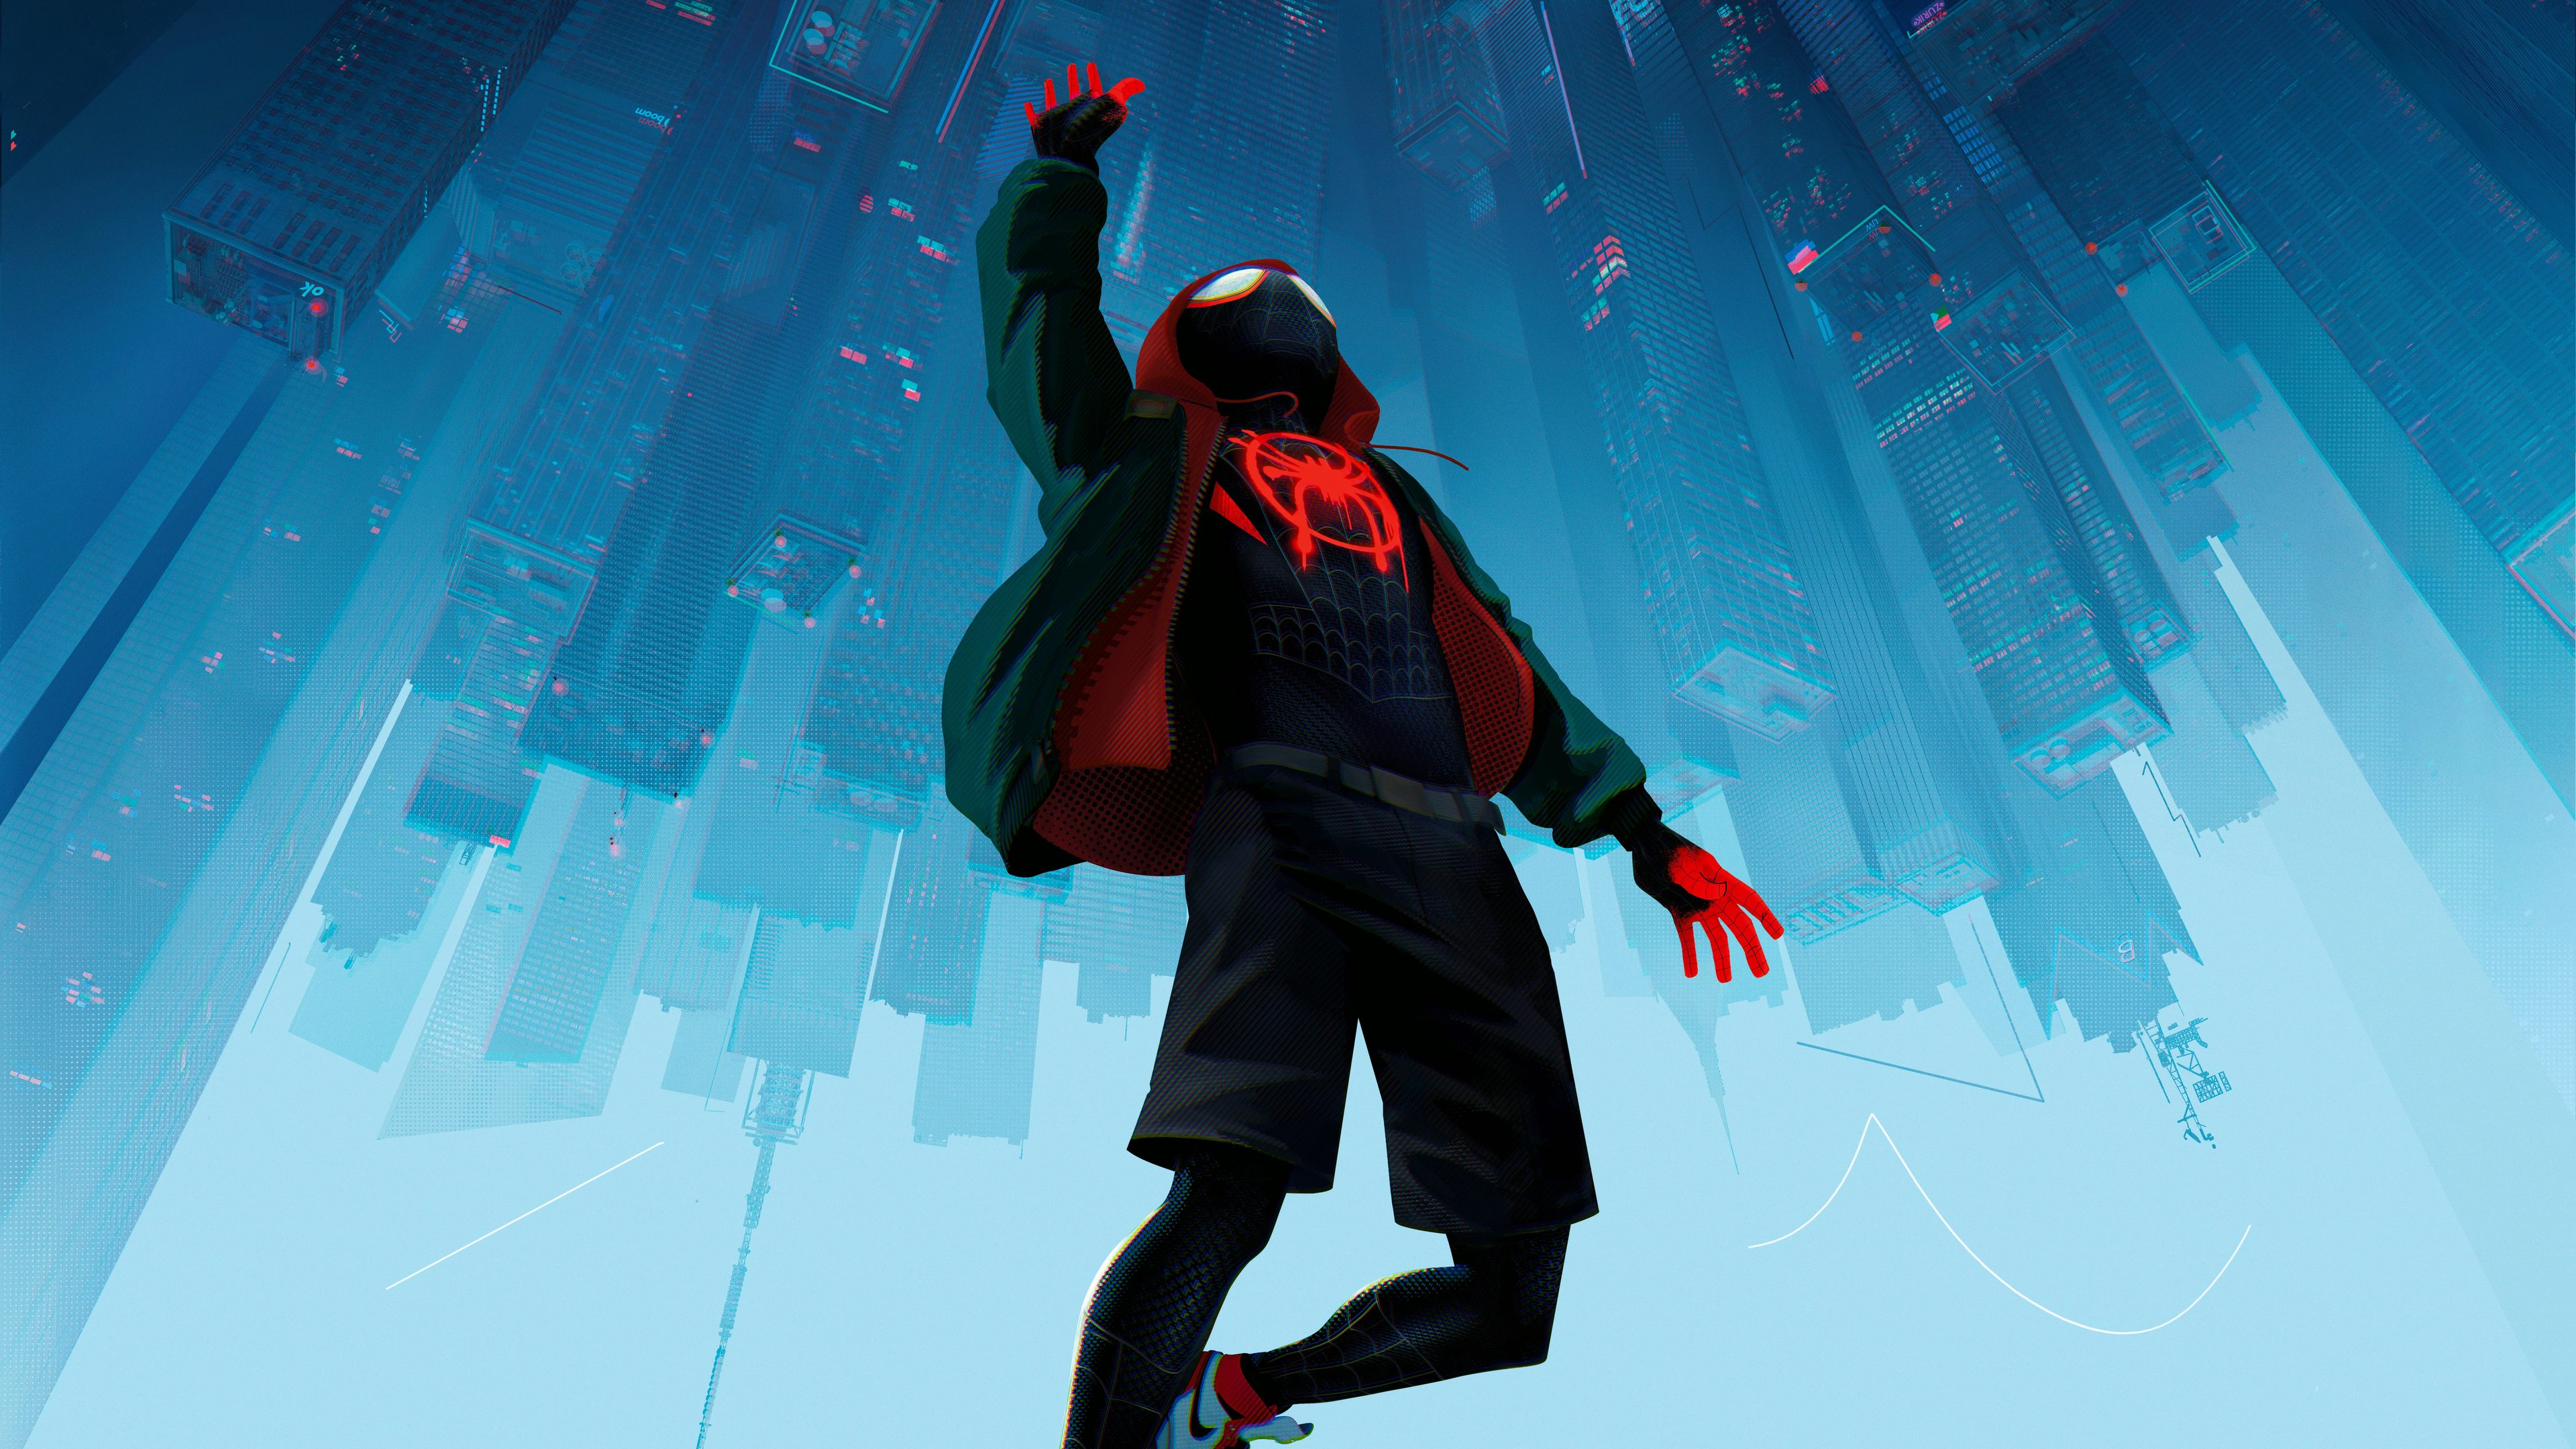 spiderman into the spider verse movie 10k 1537644418 - SpiderMan Into The Spider Verse Movie 10k - spiderman wallpapers, spiderman into the spider verse wallpapers, movies wallpapers, hd-wallpapers, animated movies wallpapers, 8k wallpapers, 5k wallpapers, 4k-wallpapers, 2018-movies-wallpapers, 10k wallpapers